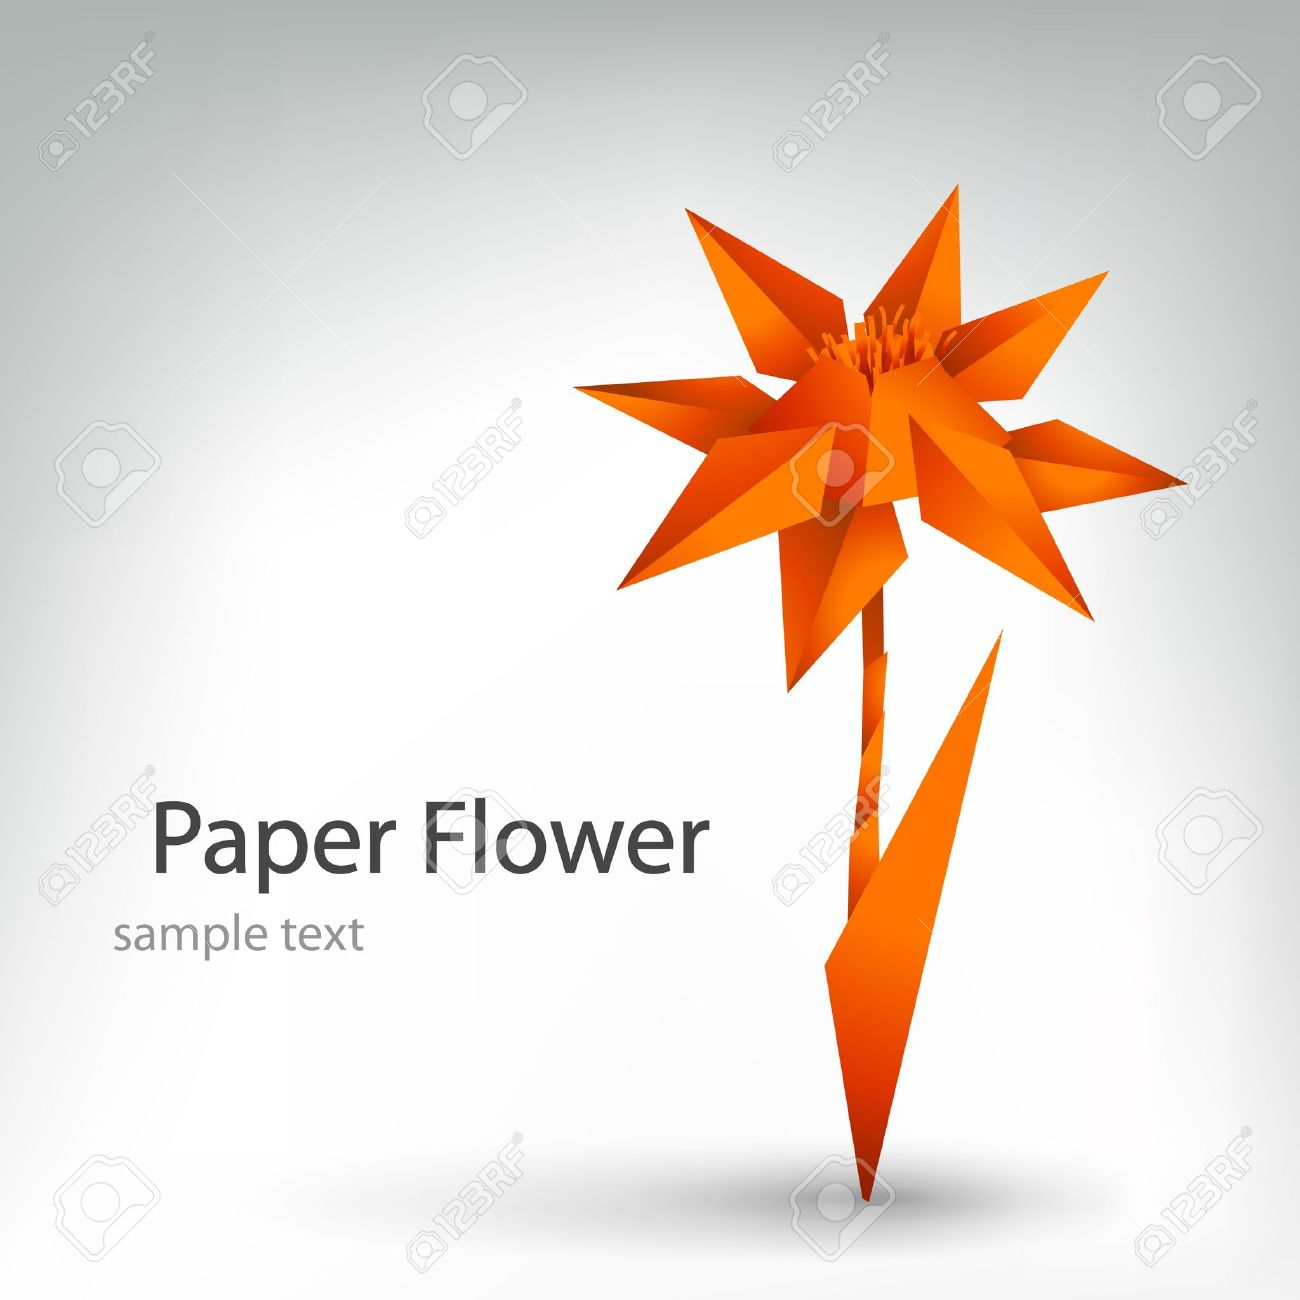 Origami flower royalty free cliparts vectors and stock origami flower stock vector 9842045 mightylinksfo